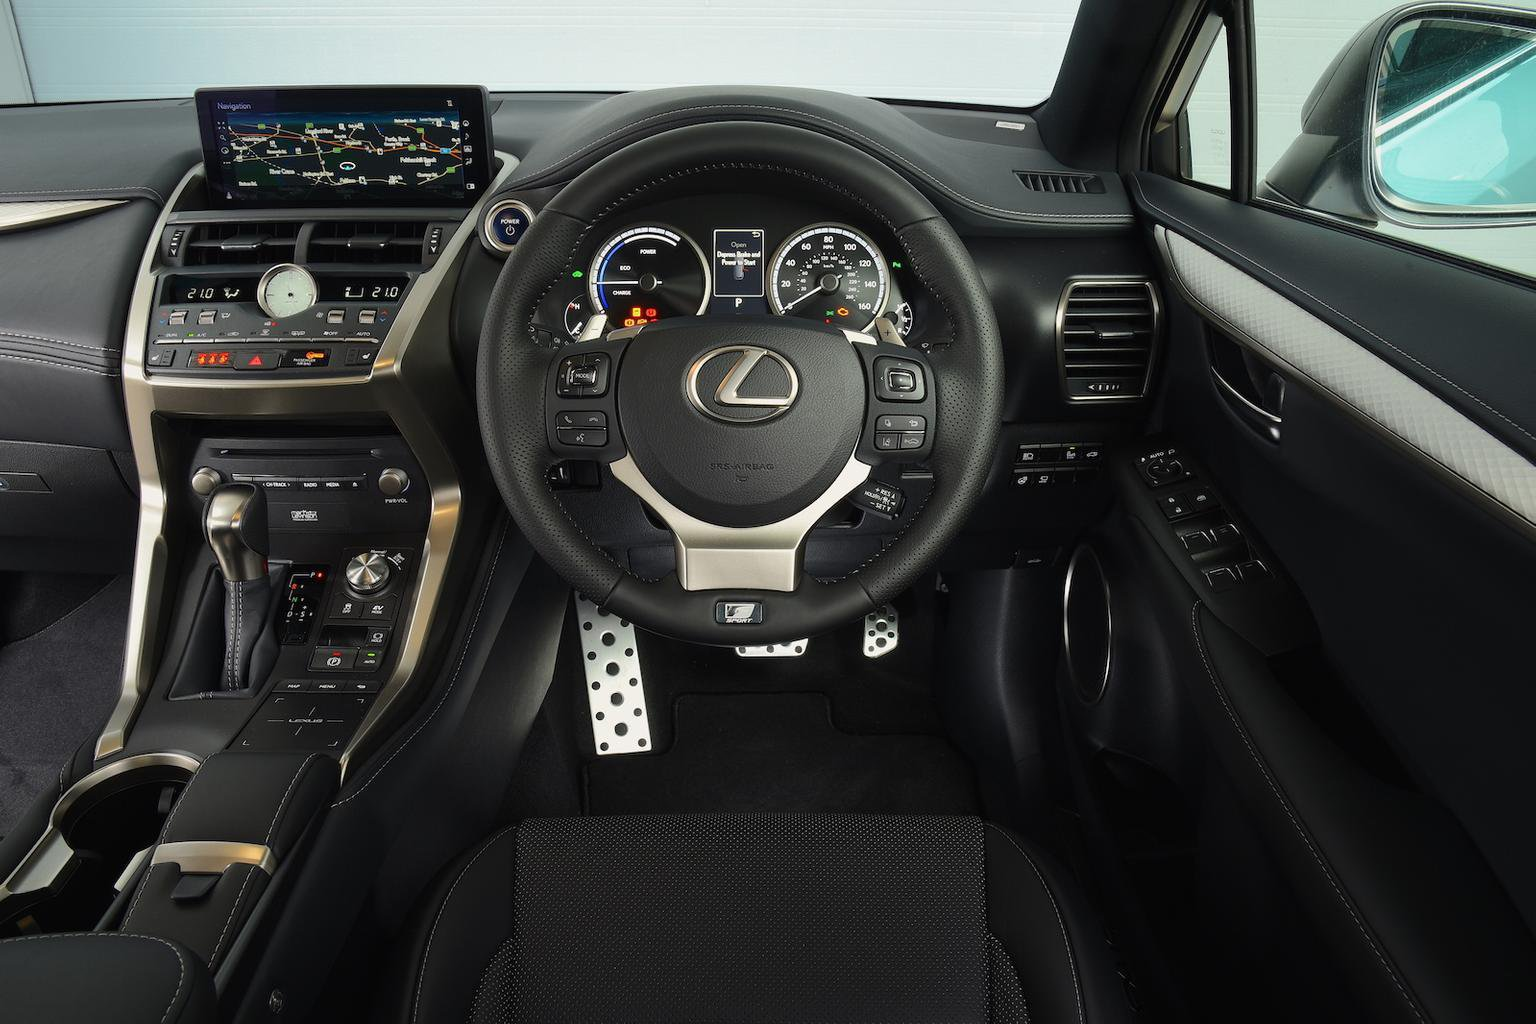 2017 Lexus NX 300h Luxury - interior